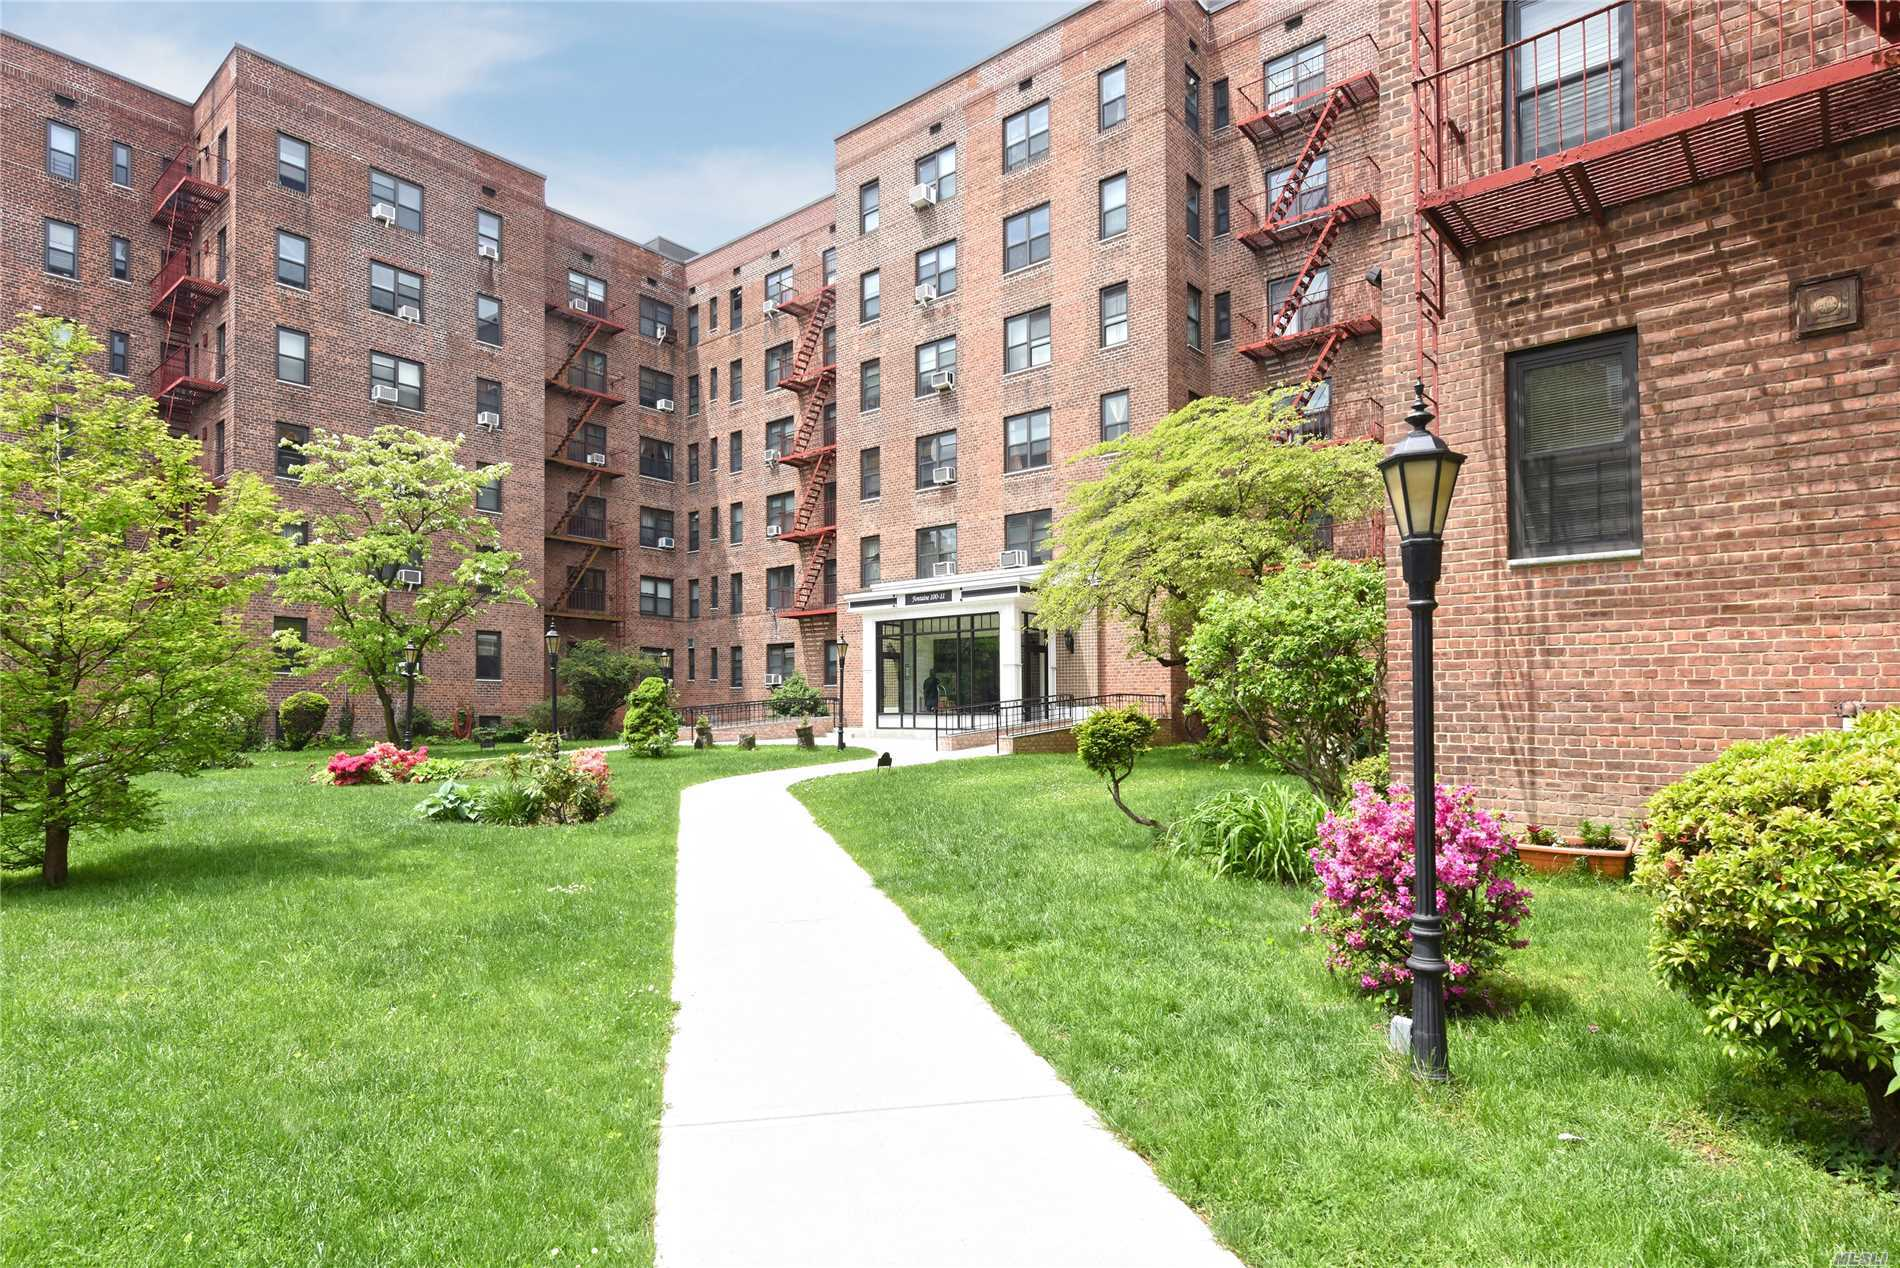 100-11 67 Rd, 123 - Forest Hills, New York